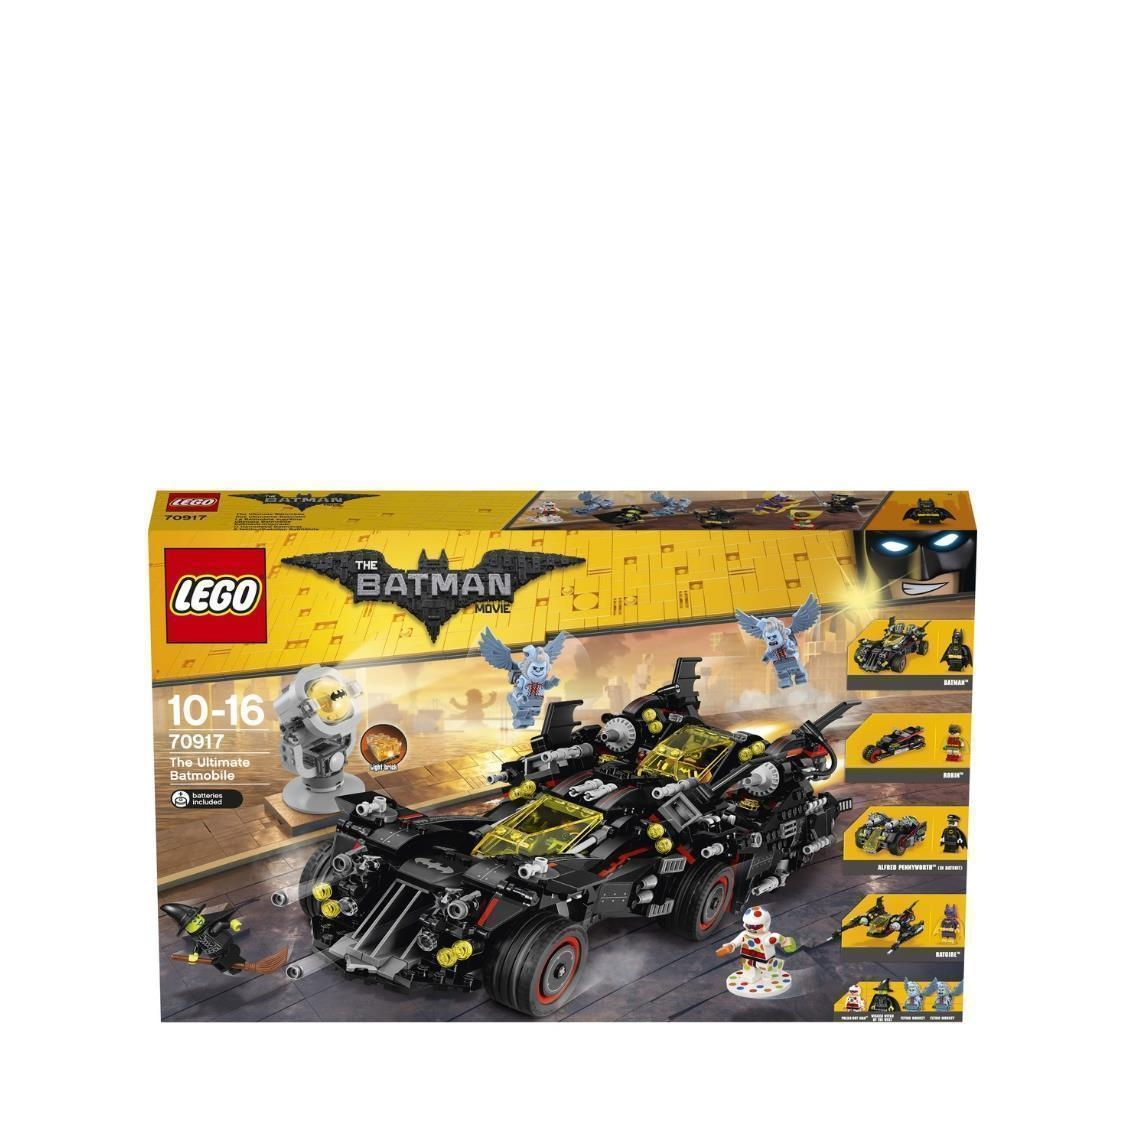 The Ultimate Batmobile 70917